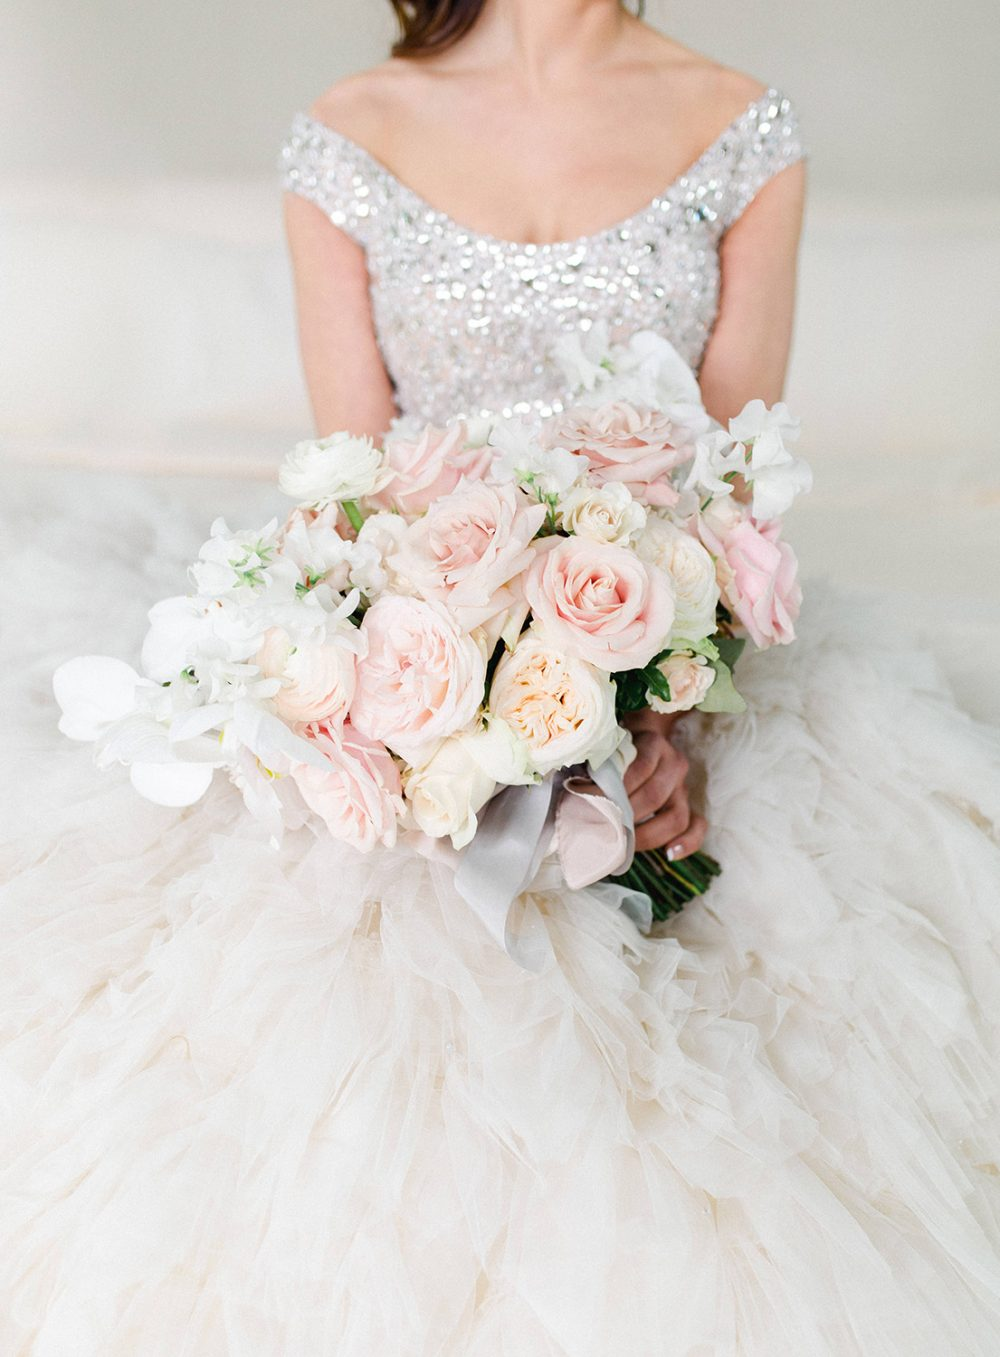 Elie Saab Bridal Bouquet Wedding The Alpina Gstaad Destination Wedding Luxus Hochzeit Brautstrauss